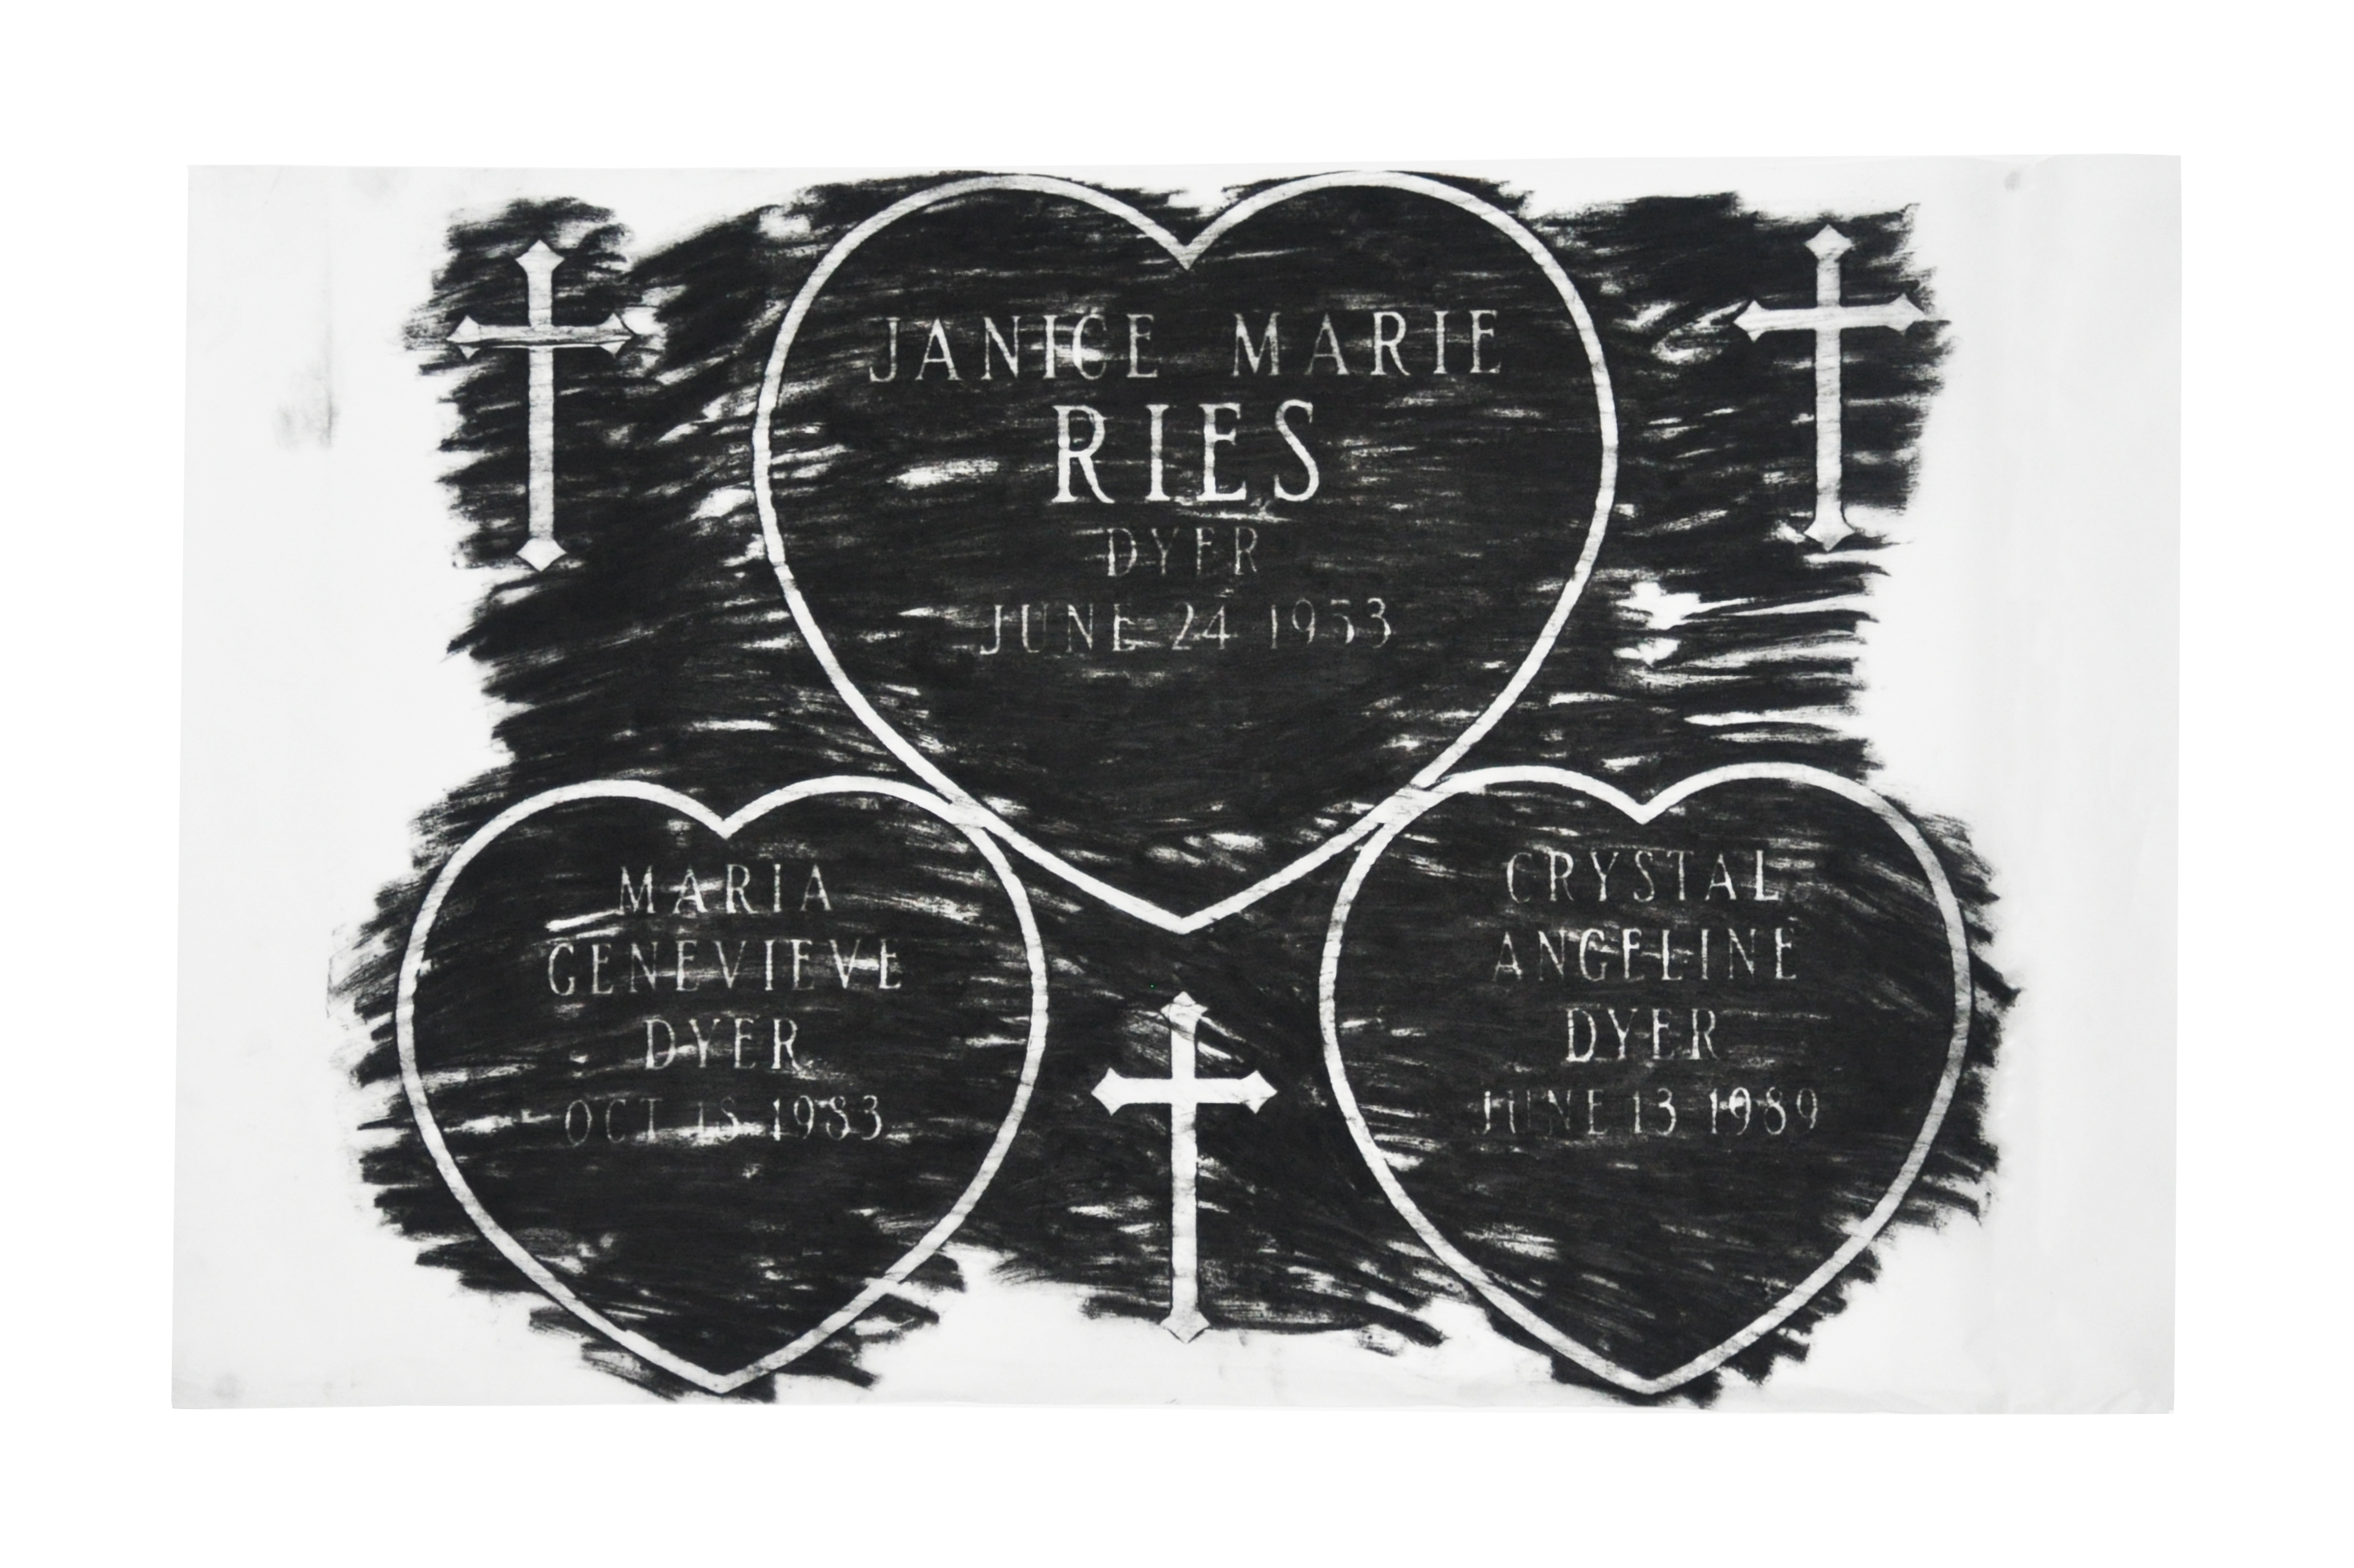 My Tombstone by Crystal Dyer Charcoal Rubbing of Gravestone